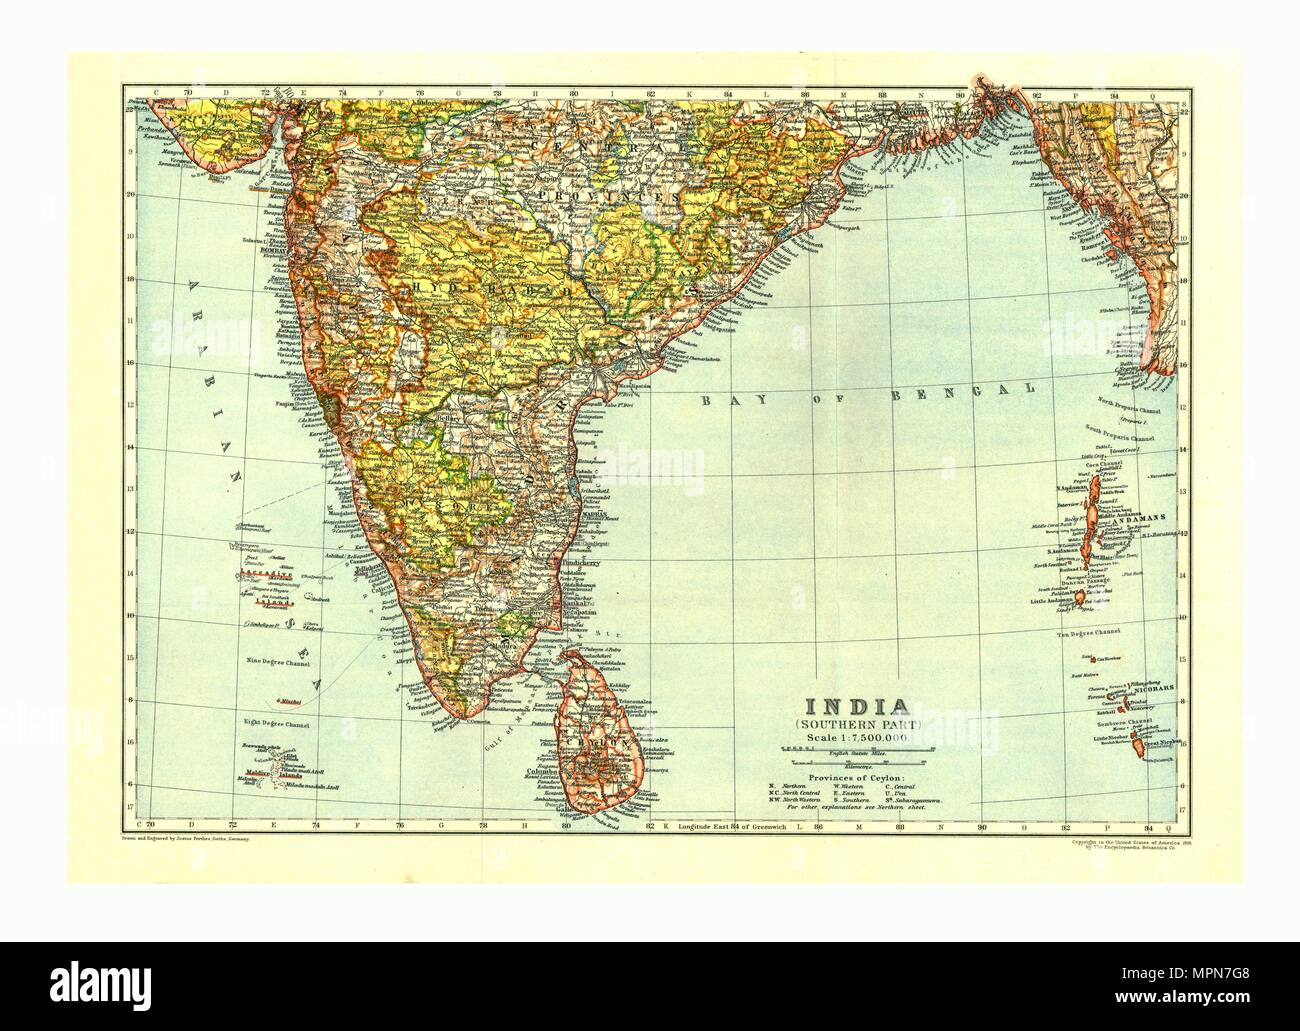 Map of India Southern part, c1910. Artist: Johann Georg Justus Perthes. - Stock Image